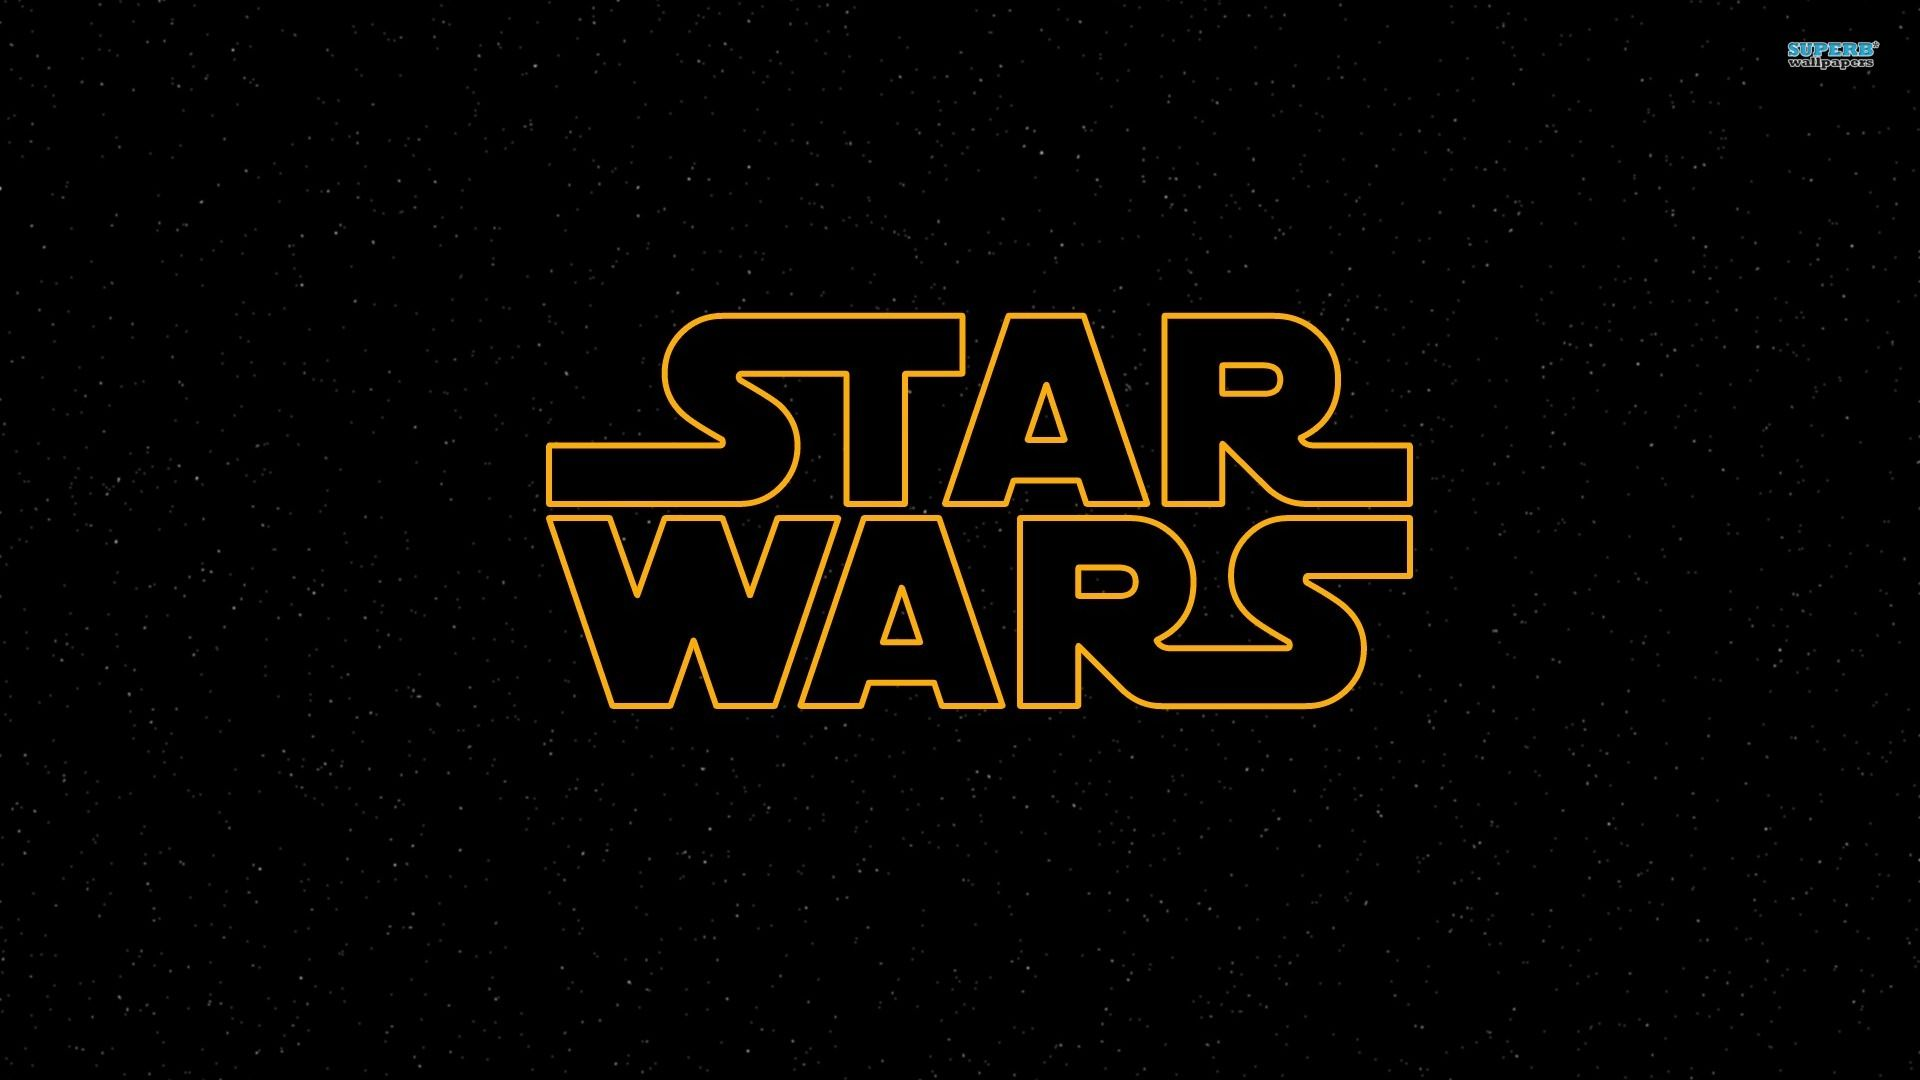 Star Wars Wallpapers For Iphone And Ipad 1920x1080